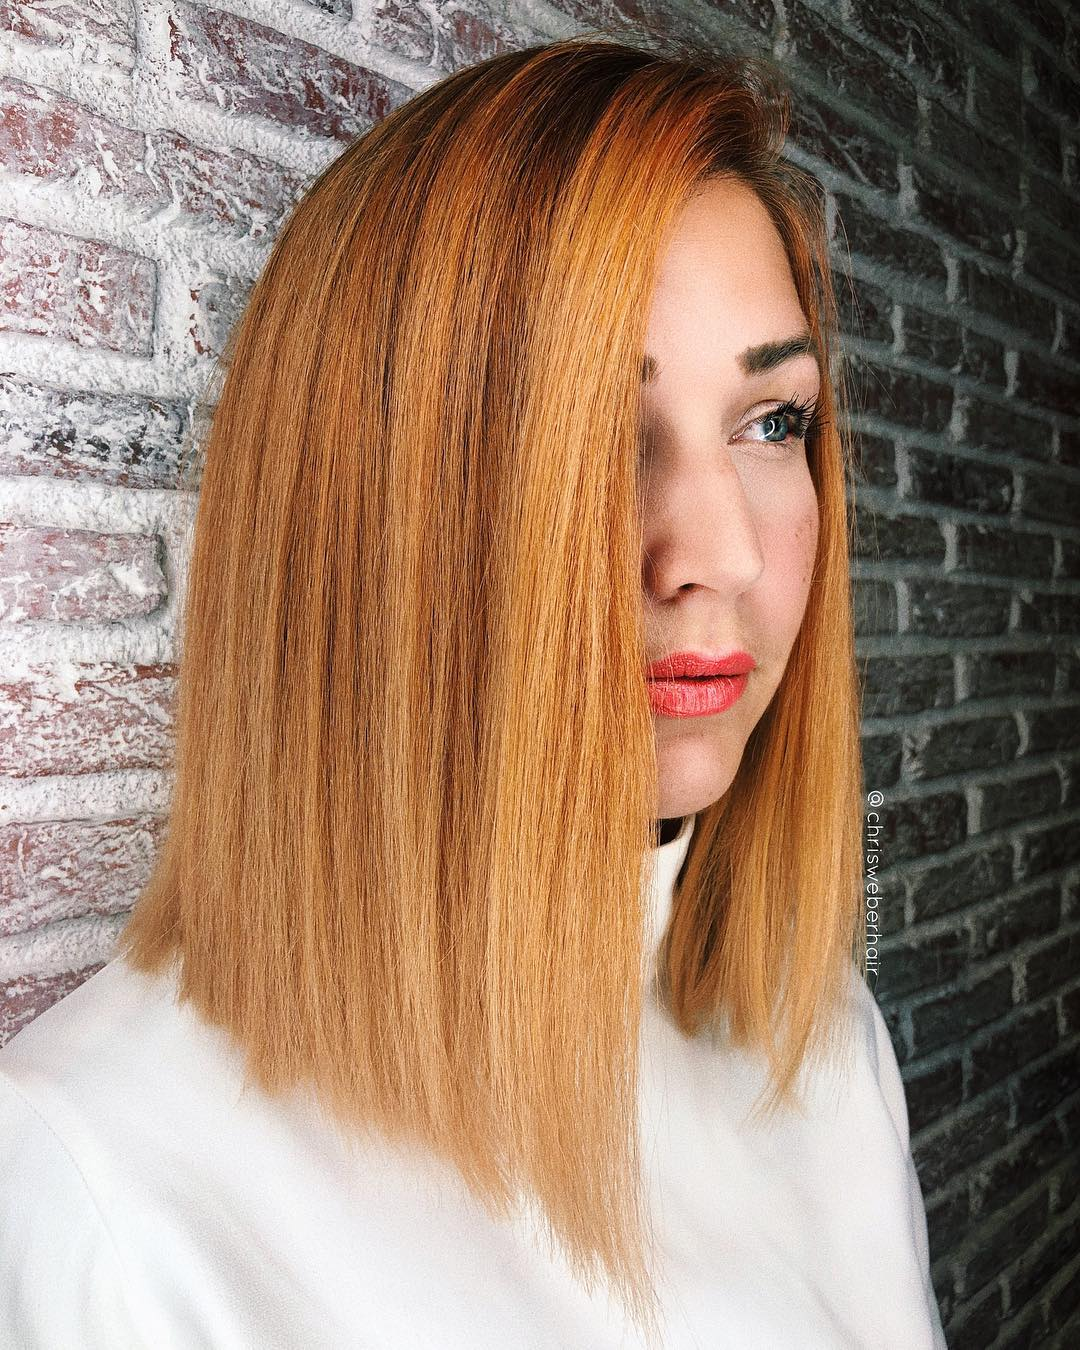 Blunt Side Parted Lob with Textured Ends and Bold Ginger Color Medium Length Hairstyle